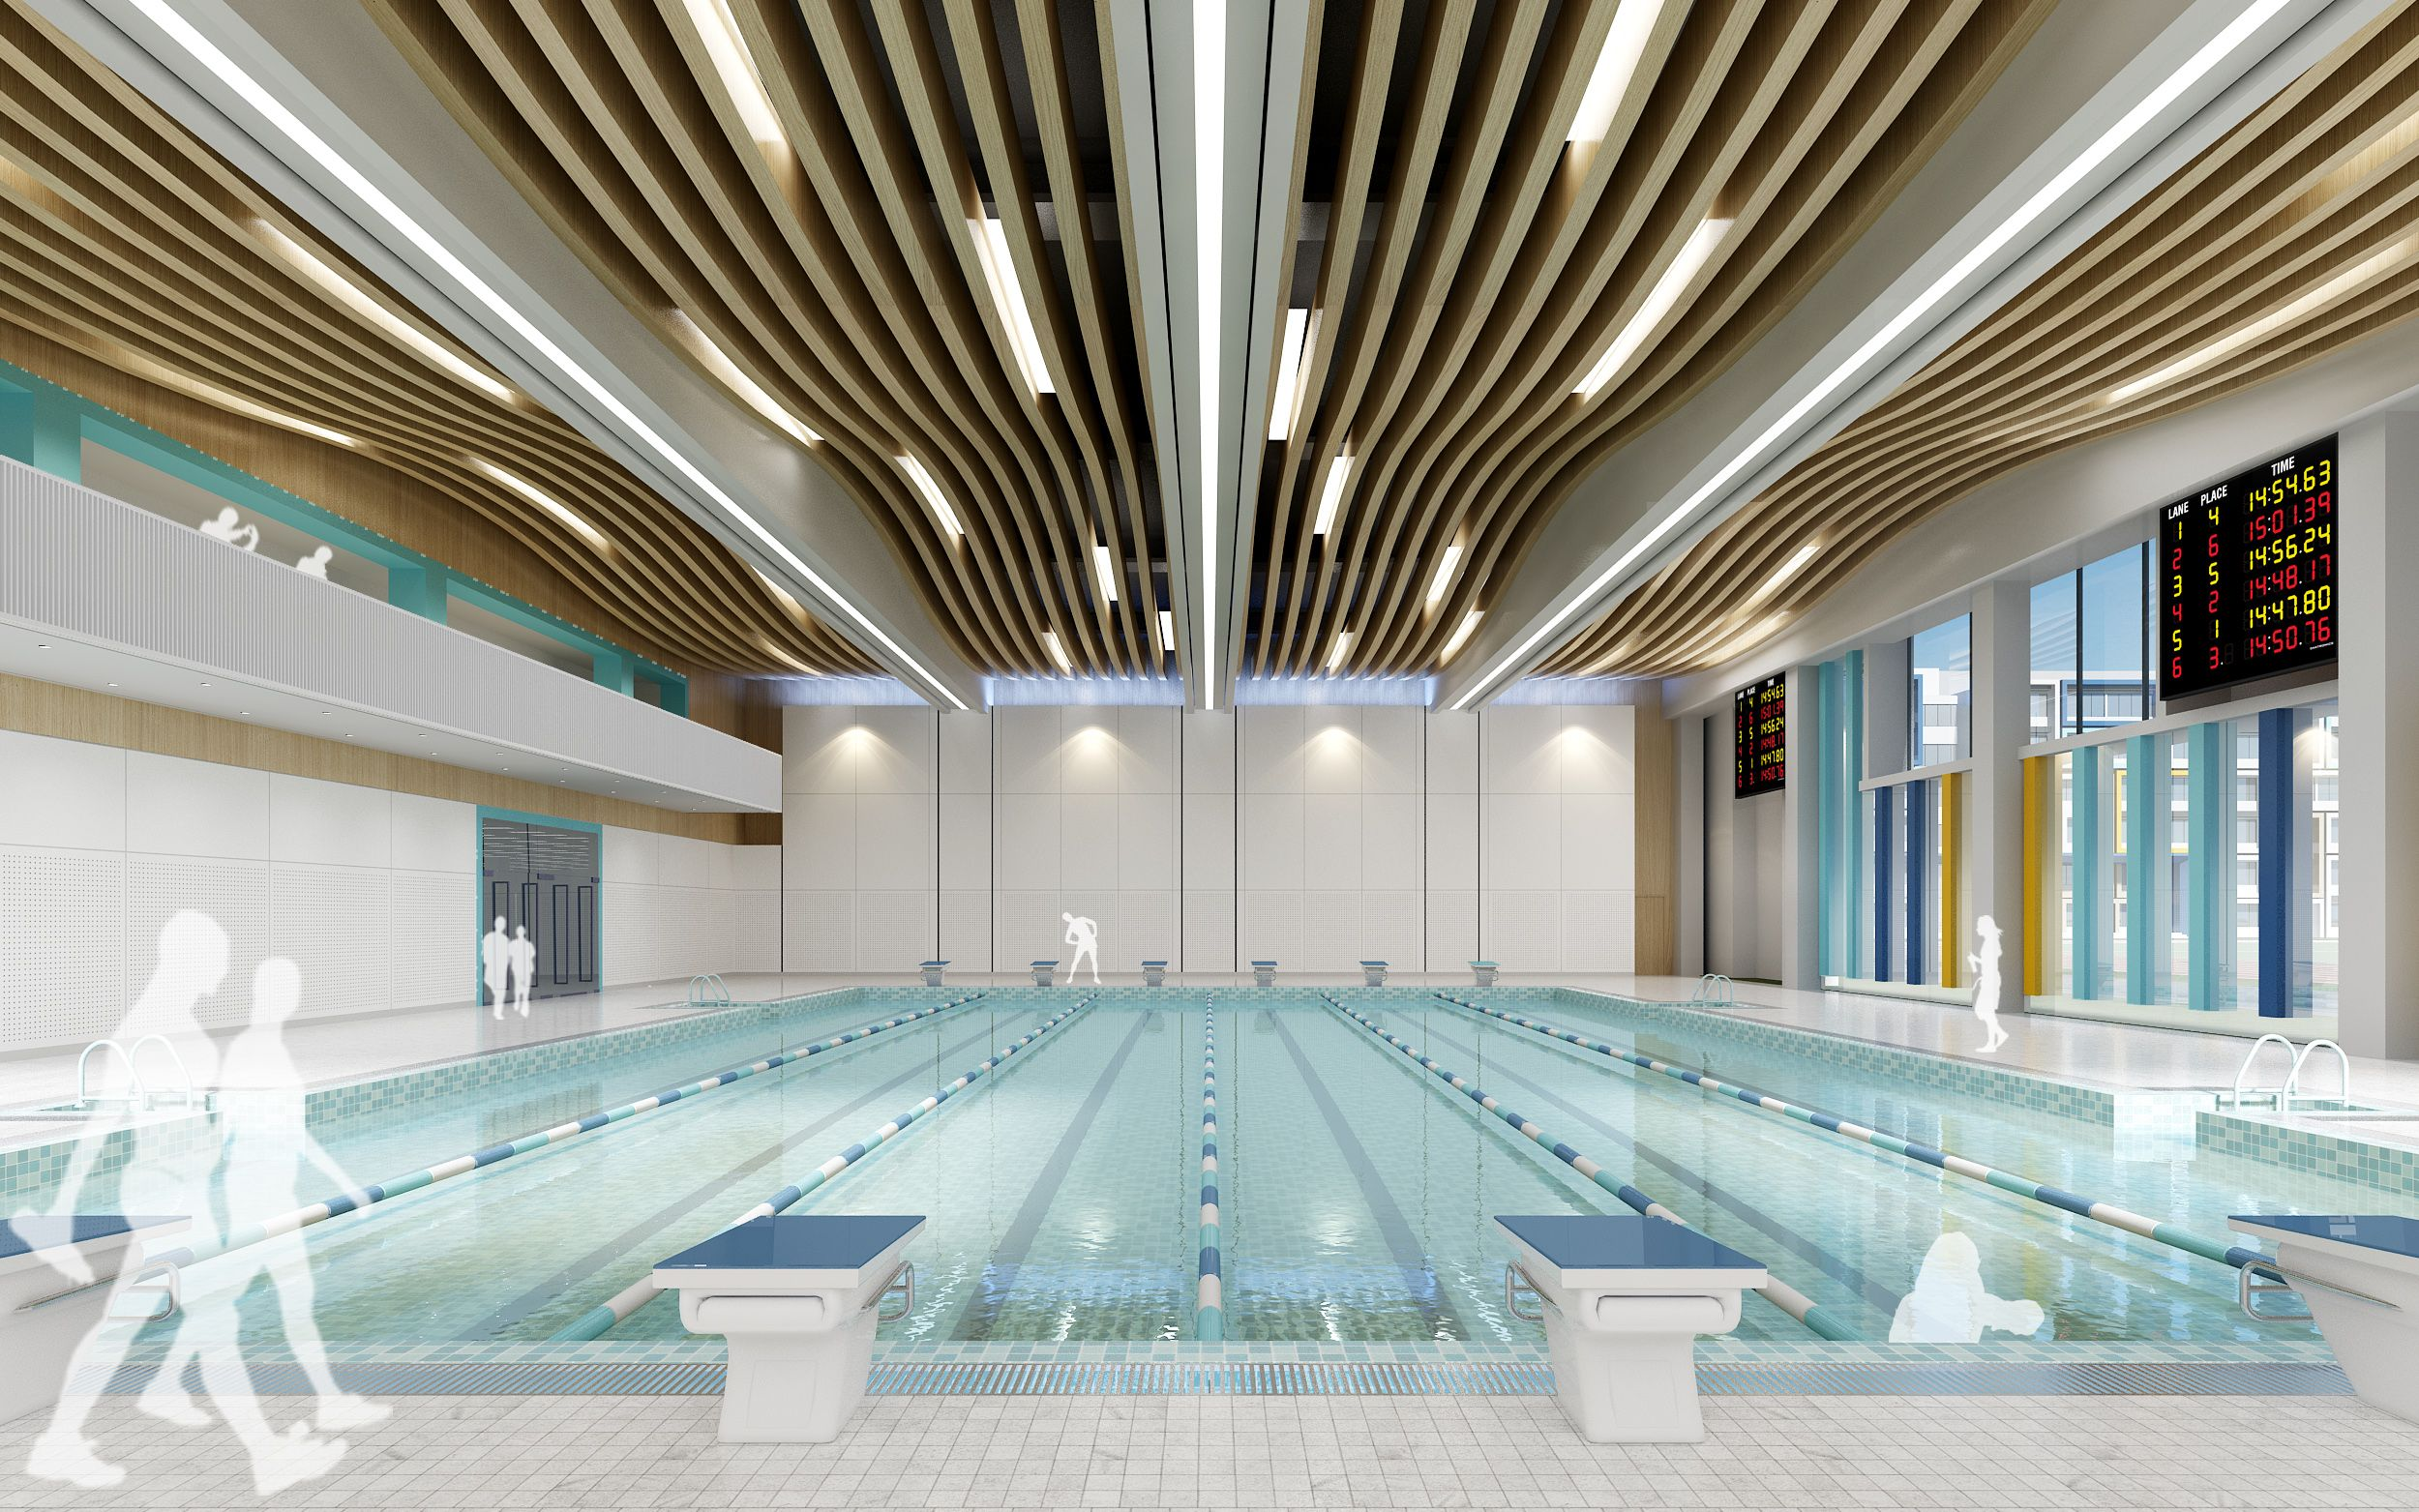 School Indoor Swimming Pool Desain